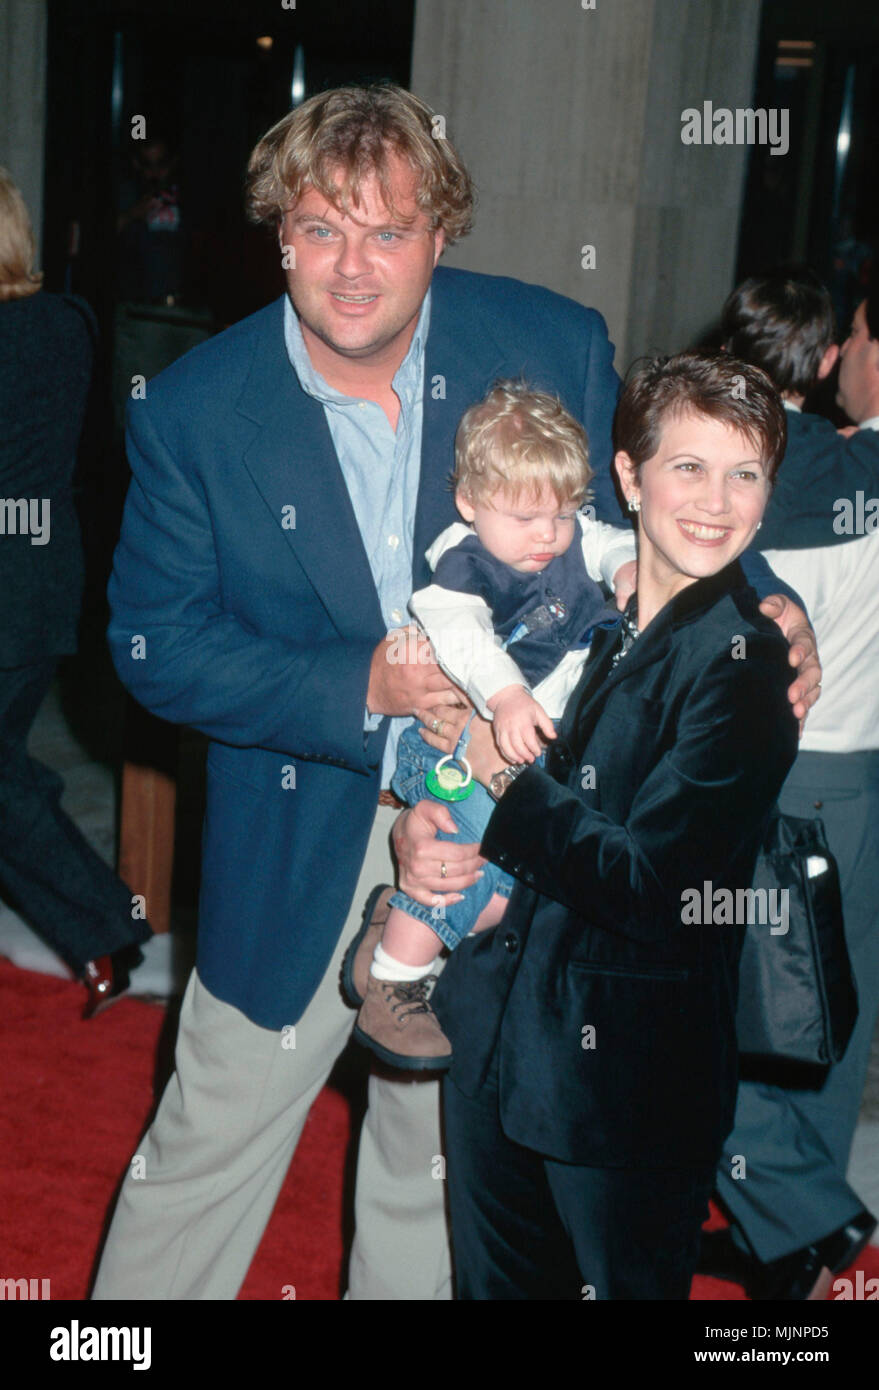 tracey gold net worthtracey gold wiki, tracey gold net worth, tracey gold, tracey gold instagram, tracey gold husband, tracey gold 2018, tracey gold now, tracey gold growing pains, tracey gold age, tracey gold siblings, tracey gold sister, tracey gold lifetime movies, tracey gold imdb, tracey gold today, tracey gold wikipedia, tracey gold 2019, tracey gold movies and tv shows, tracey gold roby marshall, tracey gold 2017, tracey gold actress